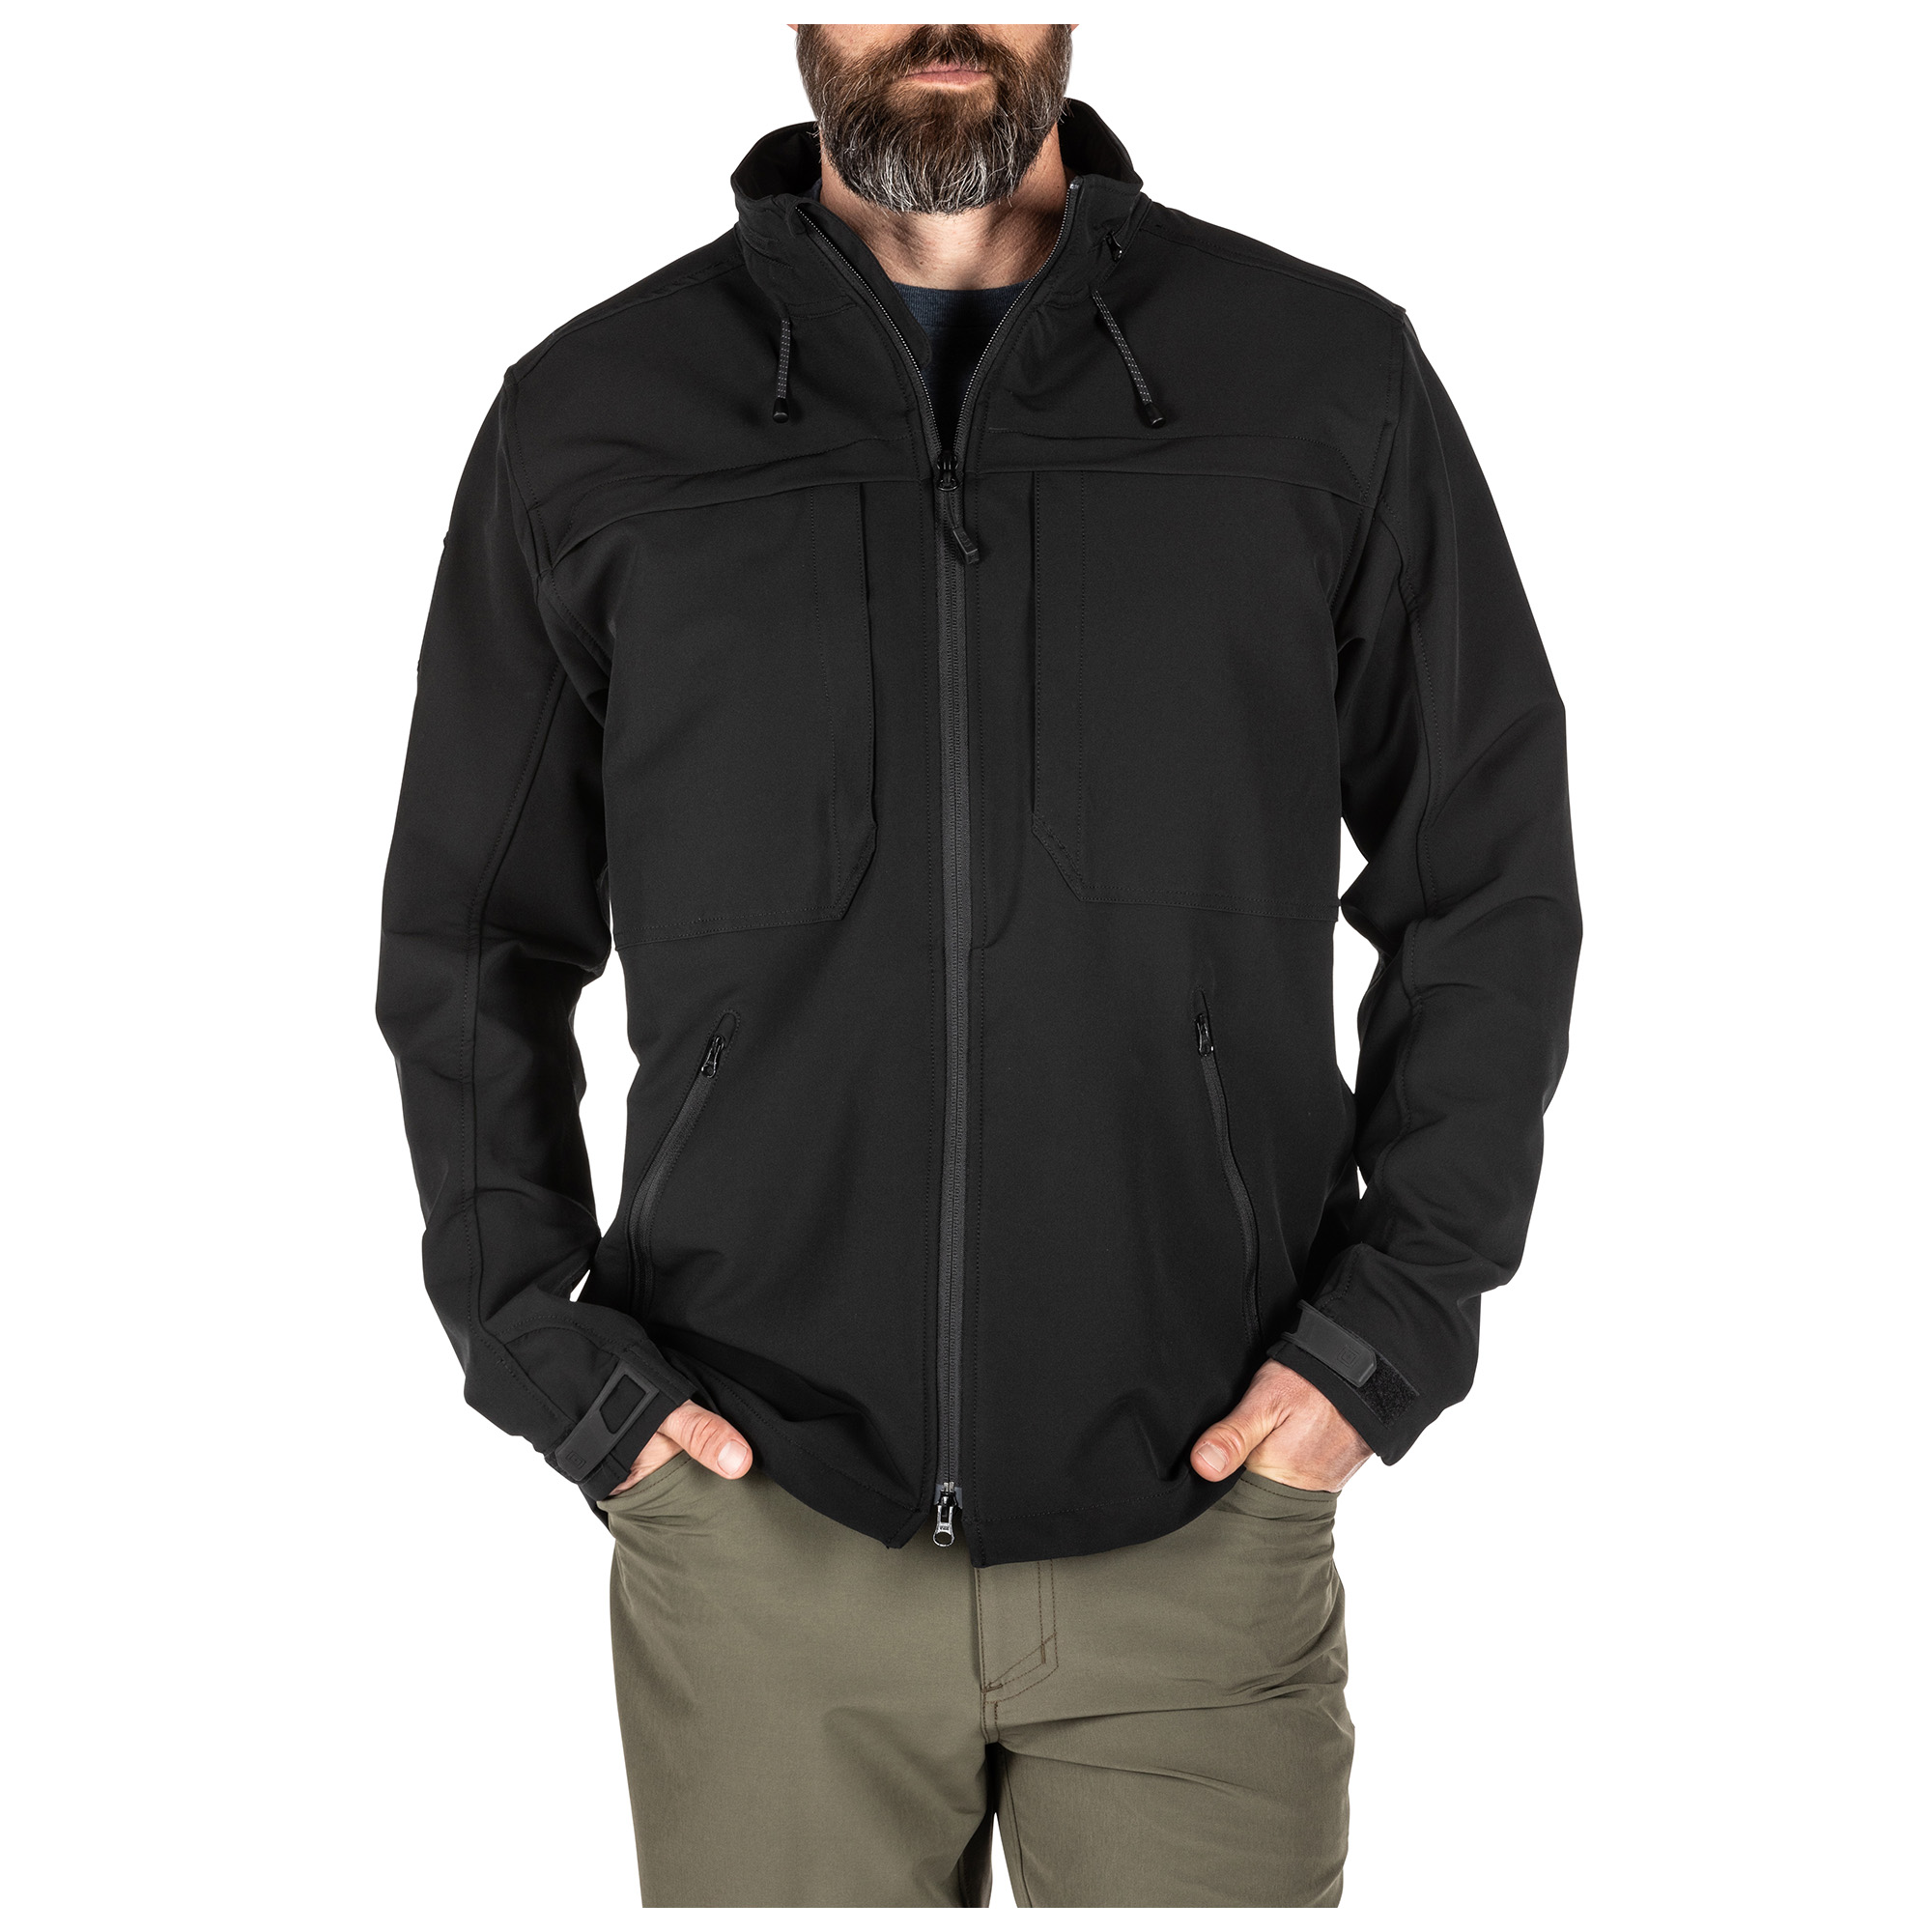 5.11 Tactical Men's Braxton Jacket (Black) thumbnail